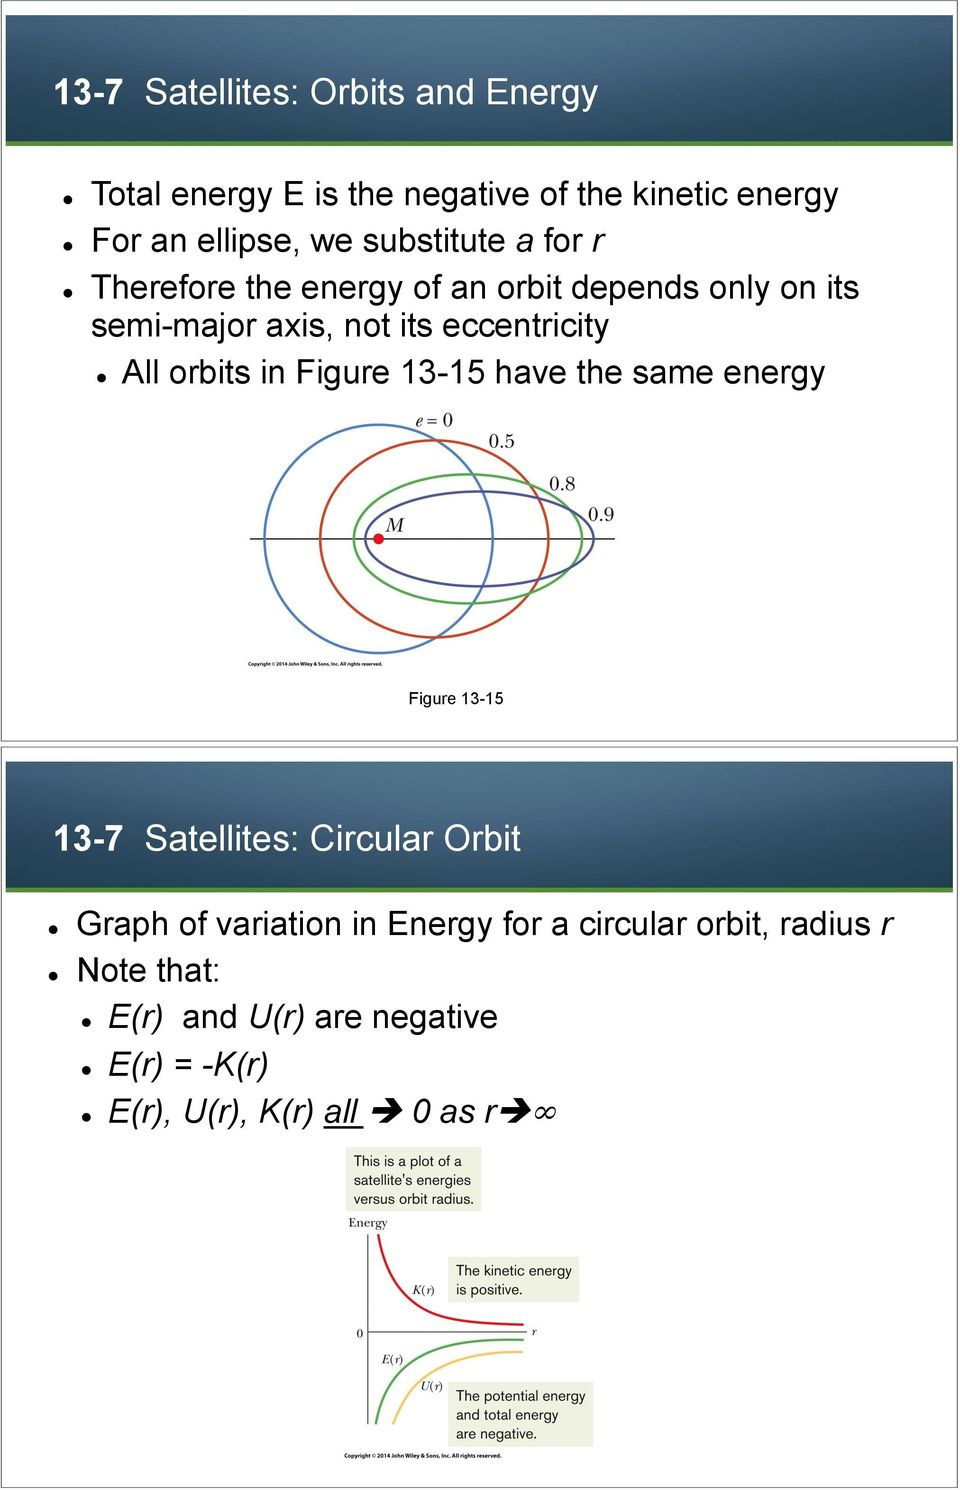 Therefore the energy of an orbit depends only on its semi-major axis, not its eccentricity!